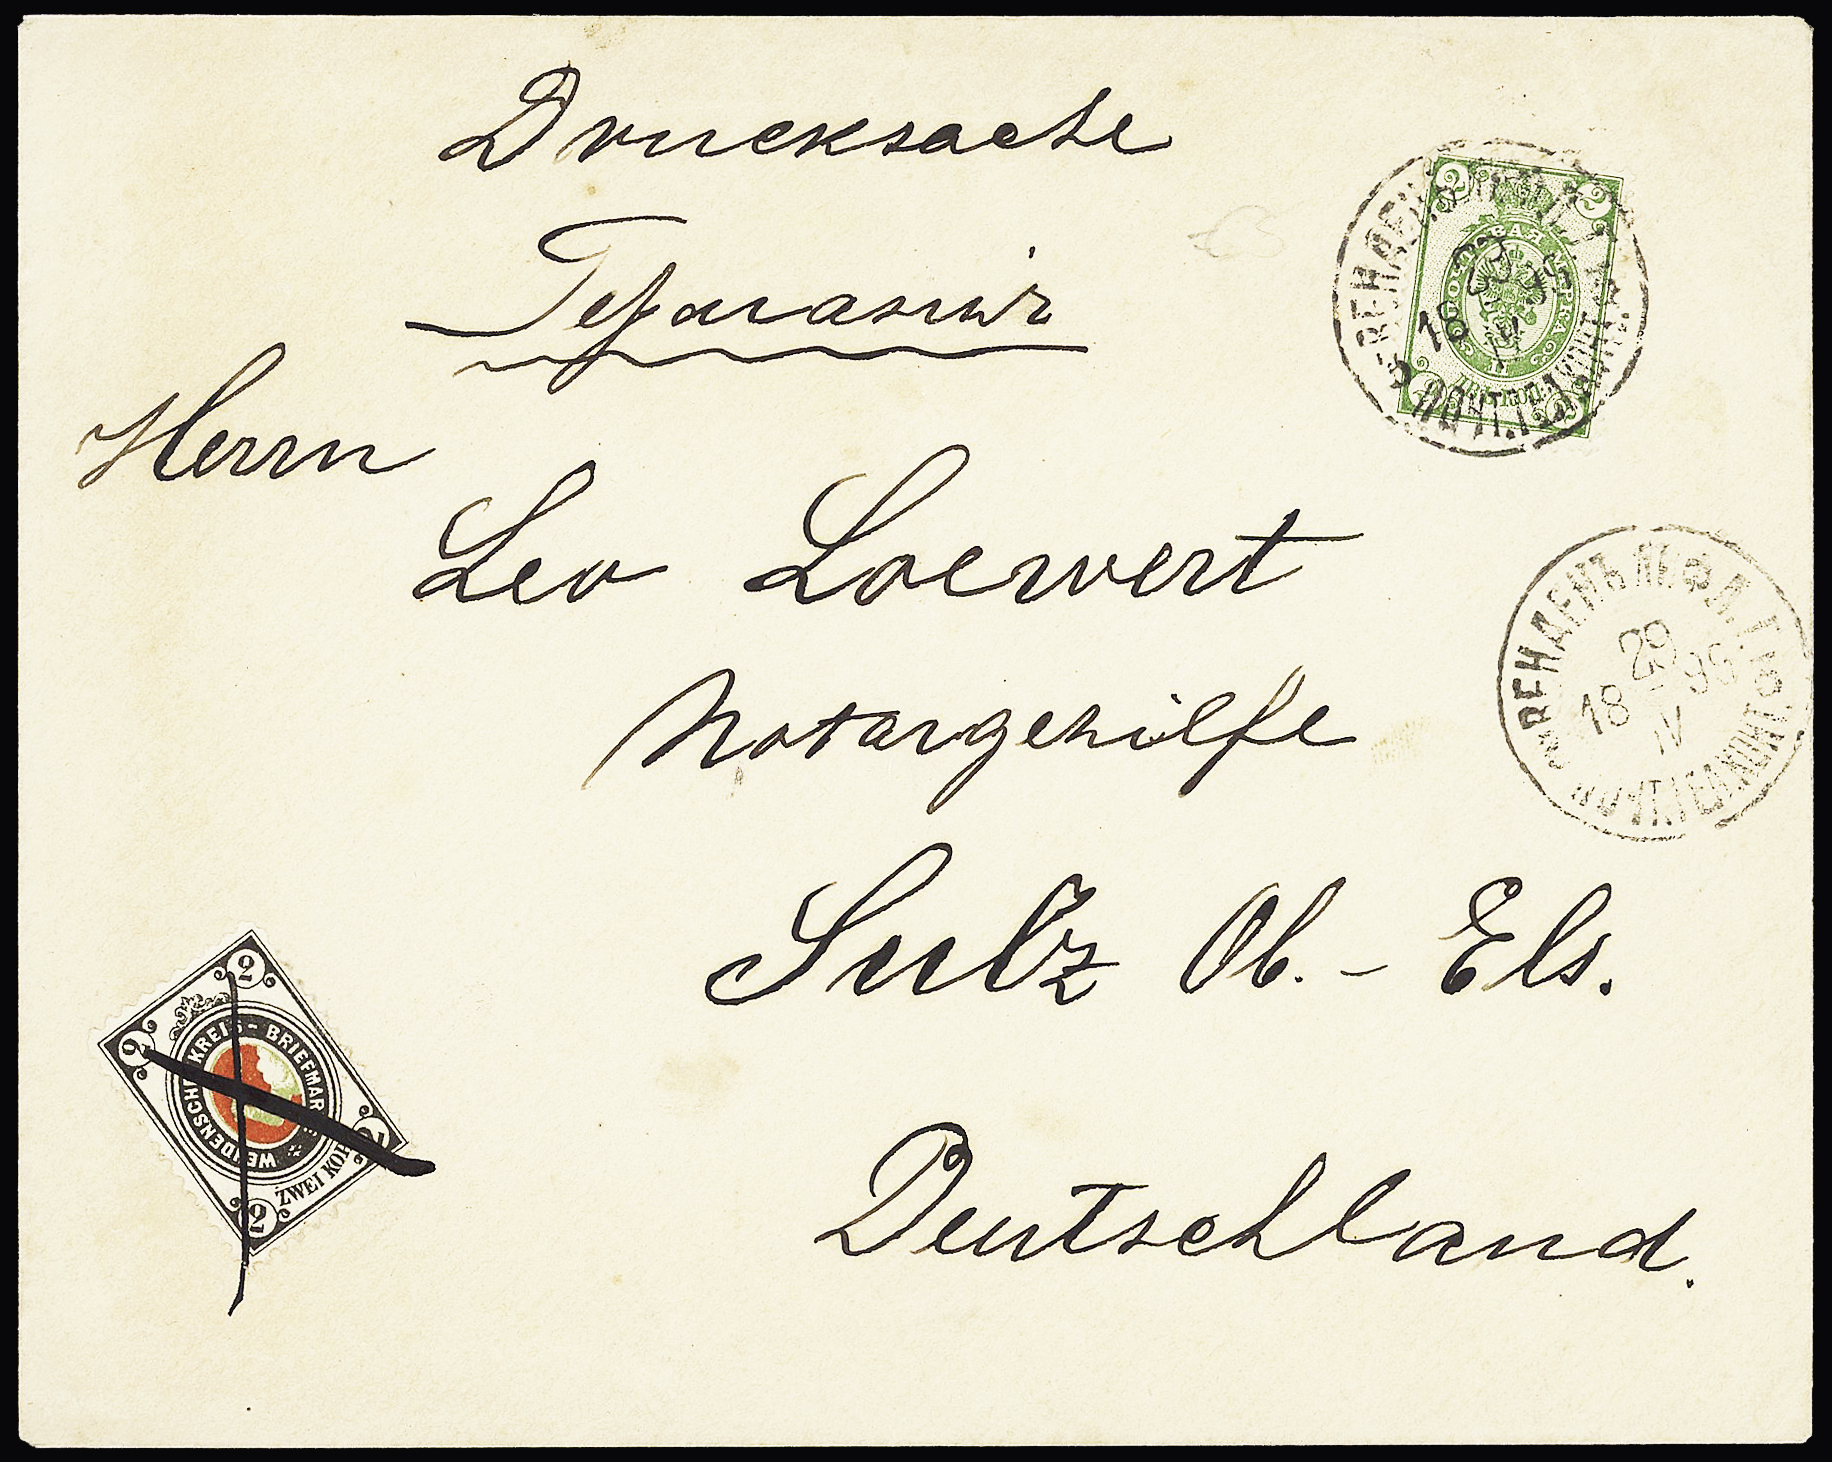 Lot 595 - Eastern Europe » RUSSIA - ZEMSTVOS » Wenden (Livland Government)  -  Le Timbre Classique SA SALE ON OFFERS N ° 37 PARIS